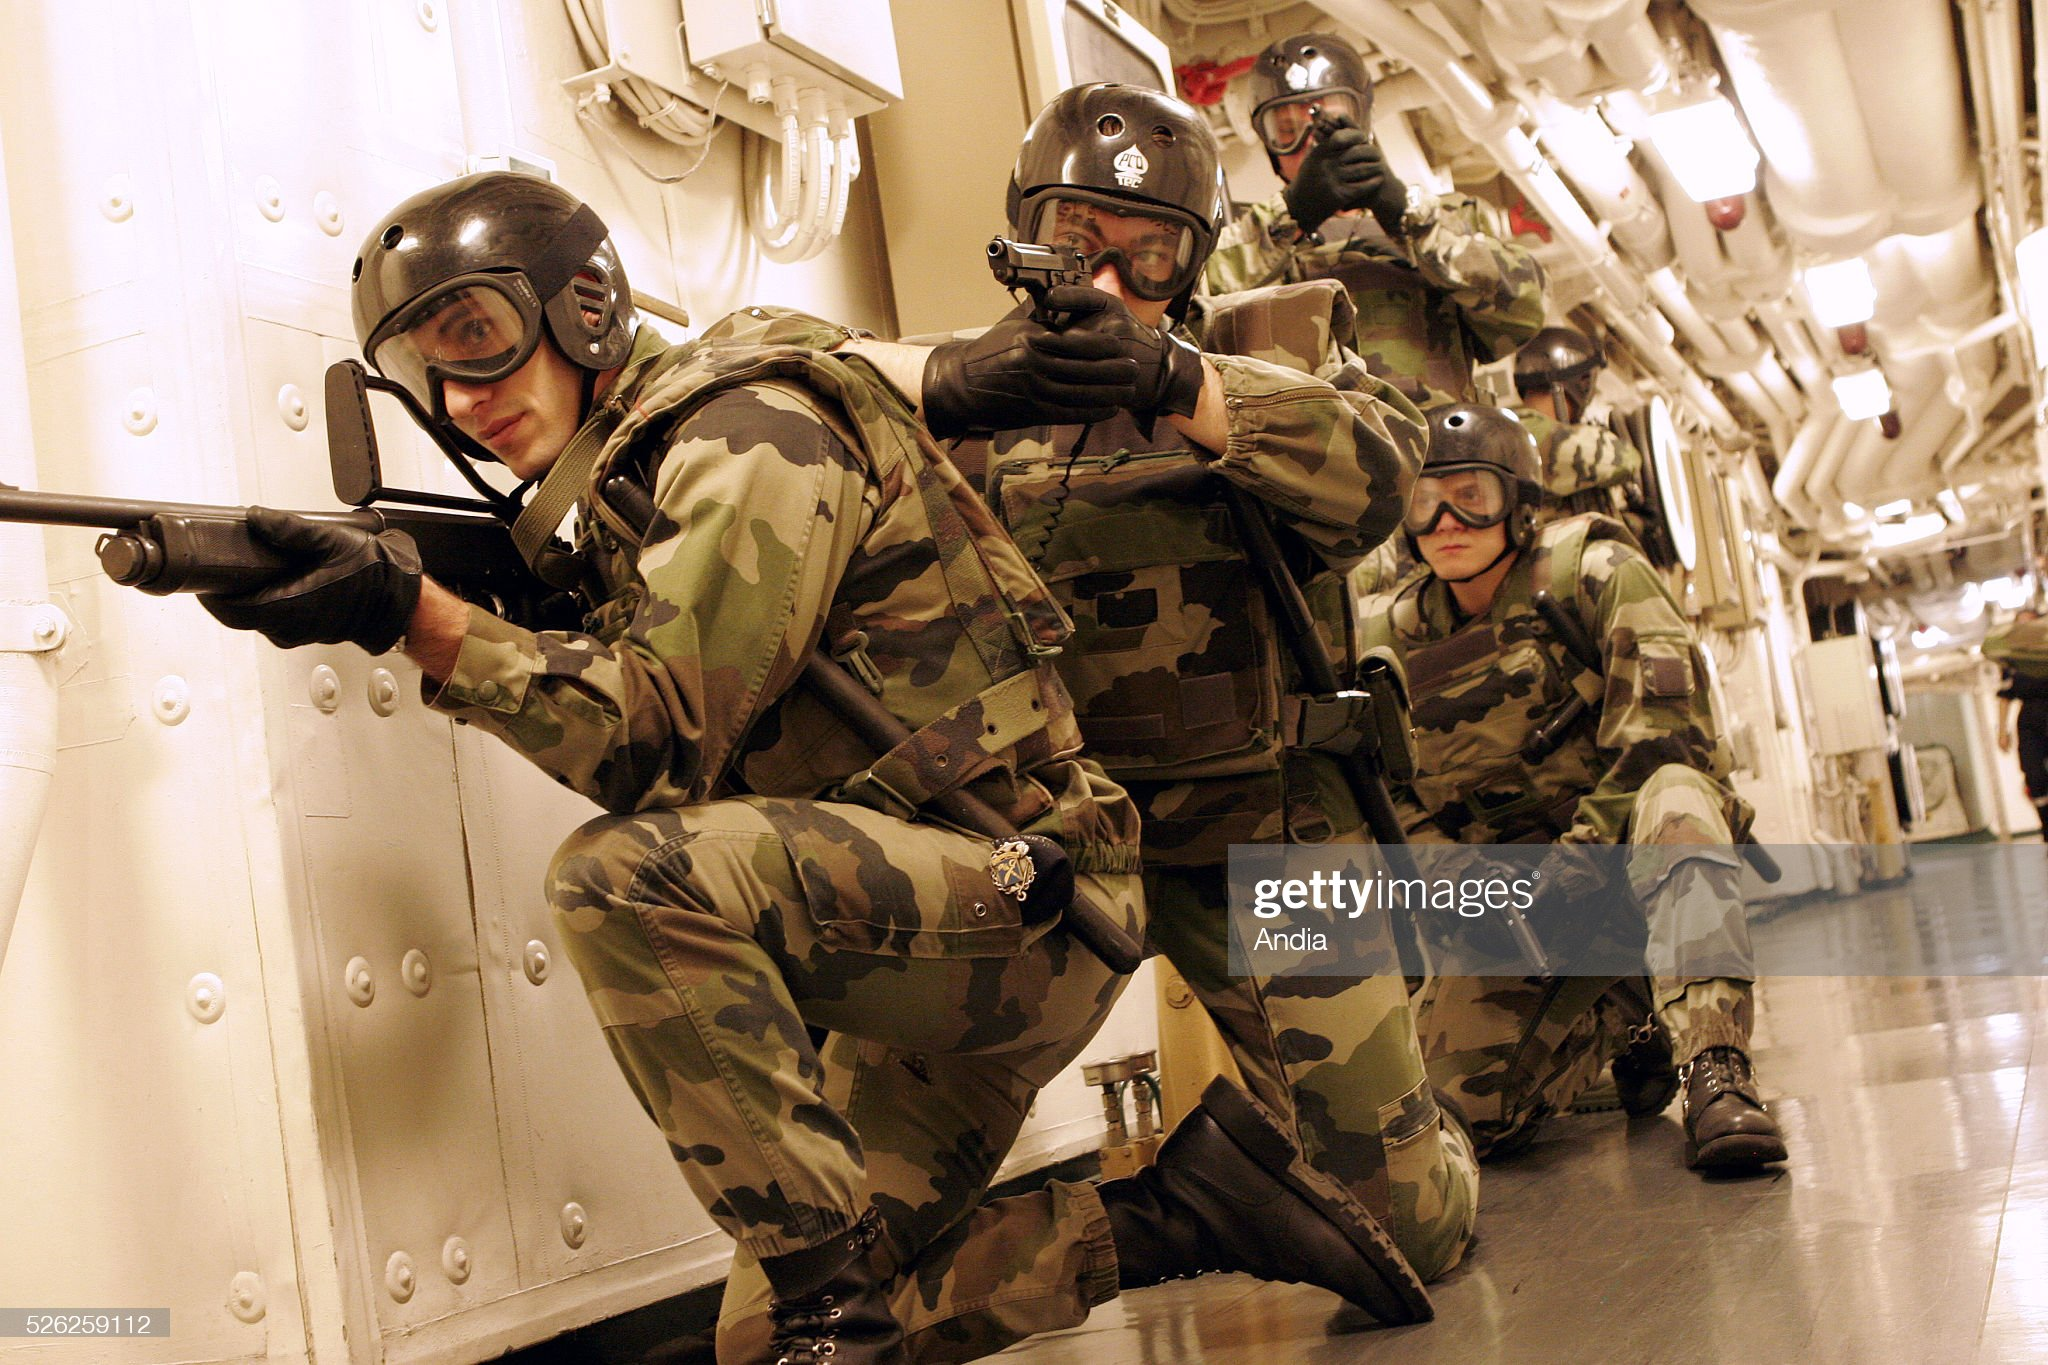 daily-life-onboard-the-french-navy-nuclearpowered-aircraft-carrier-picture-id526259112